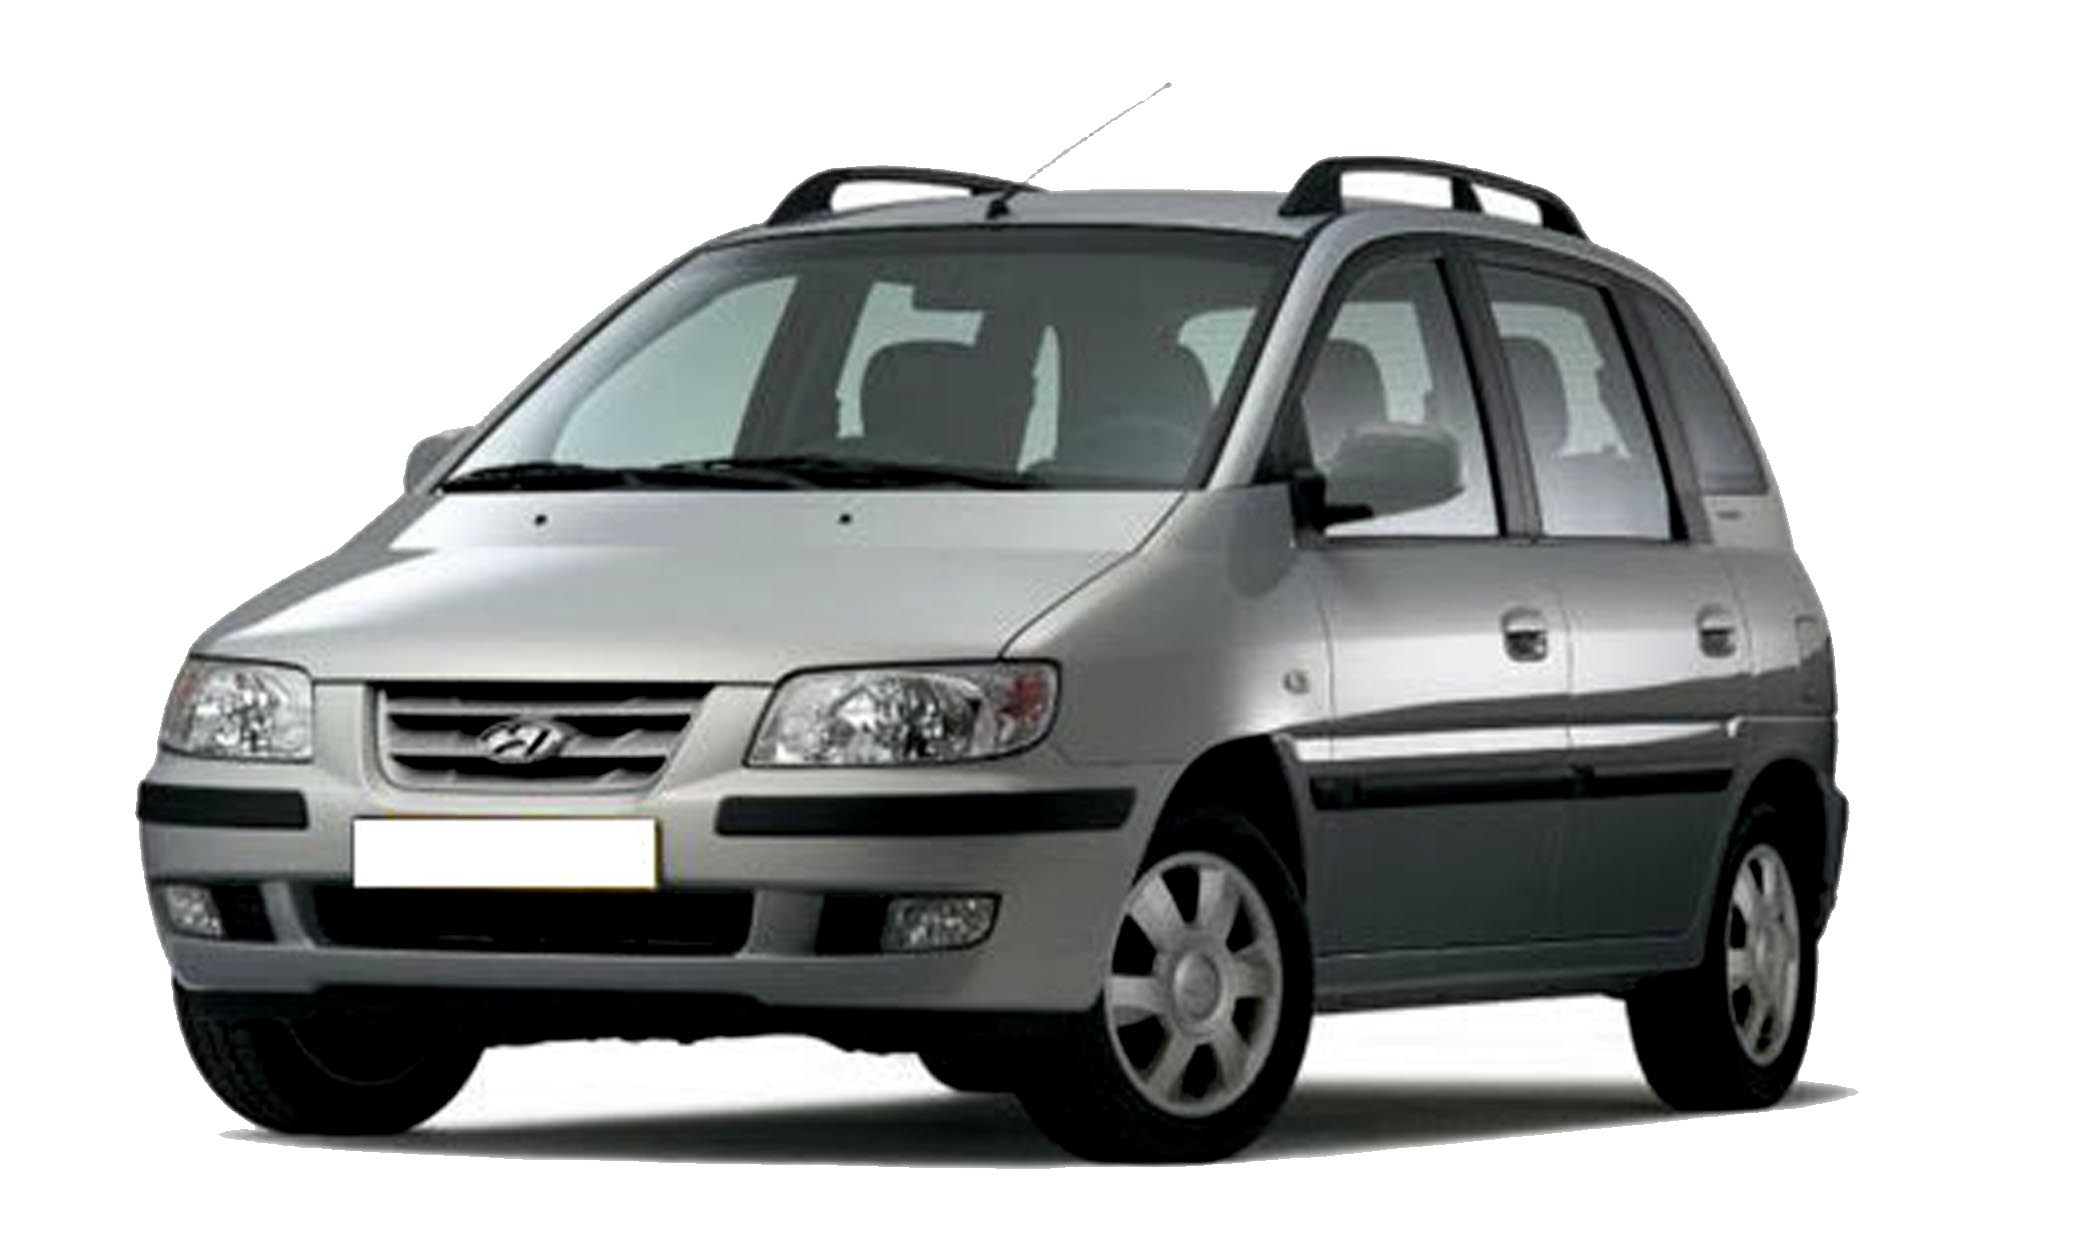 2007 Hyundai Matrix #14